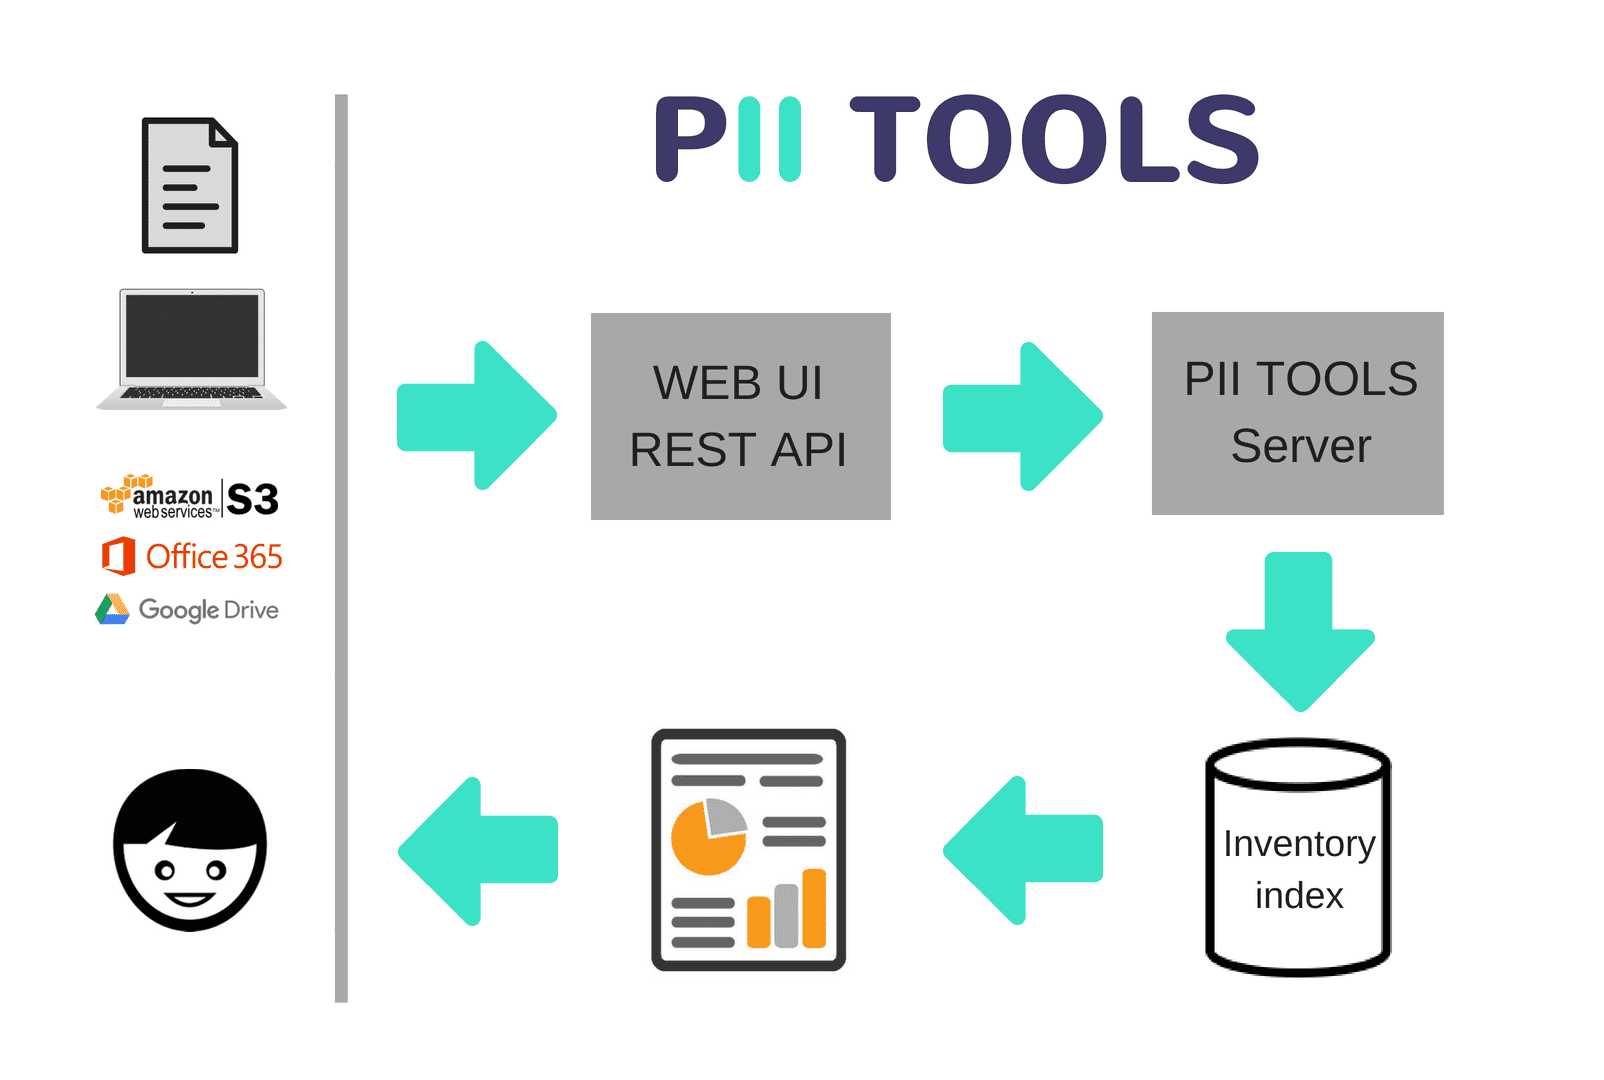 PII Tools architecture